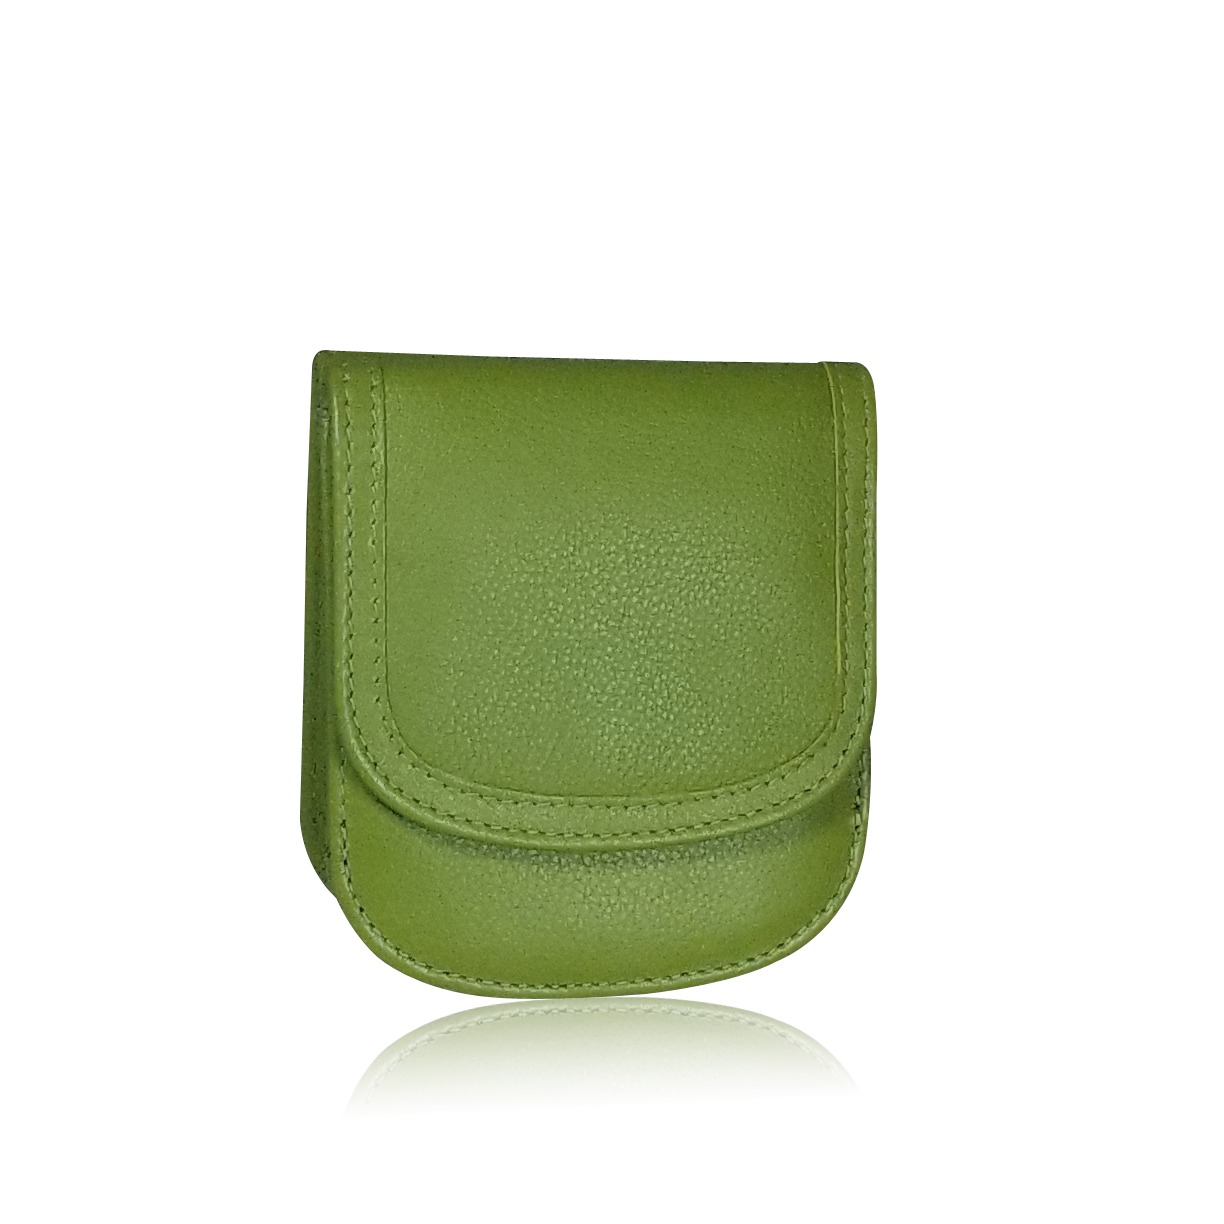 Olive Joy Taxi Wallet. Italian Leather. Minimalist. Folding Wallet for Cards, Coins & Bills.